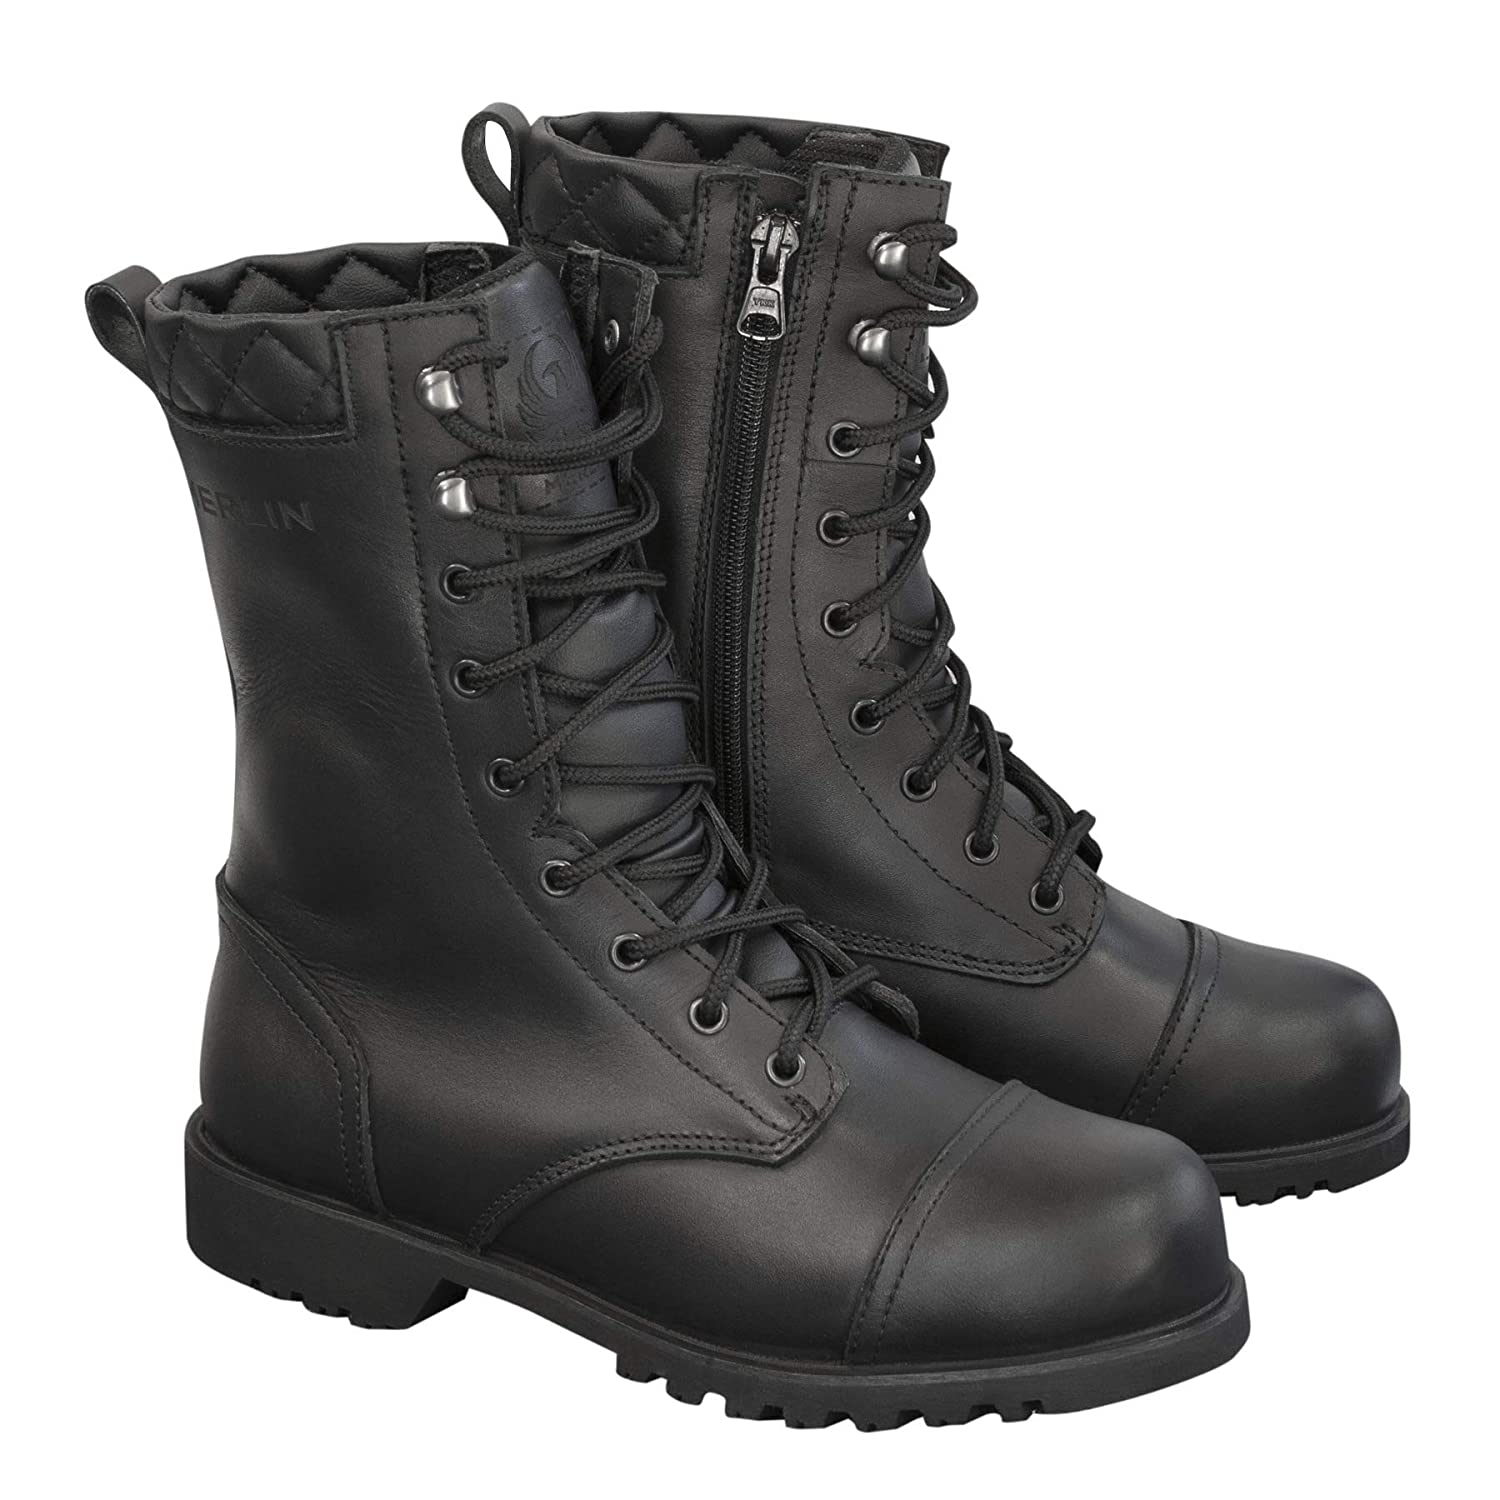 UK 7 Profirst Global Motorbike Boots Waterproof Commando Touring Motorcycle Genuine Leather Shoes High Long Ankle Casual Racing Sports Touring Cruise EU 41 Full Black